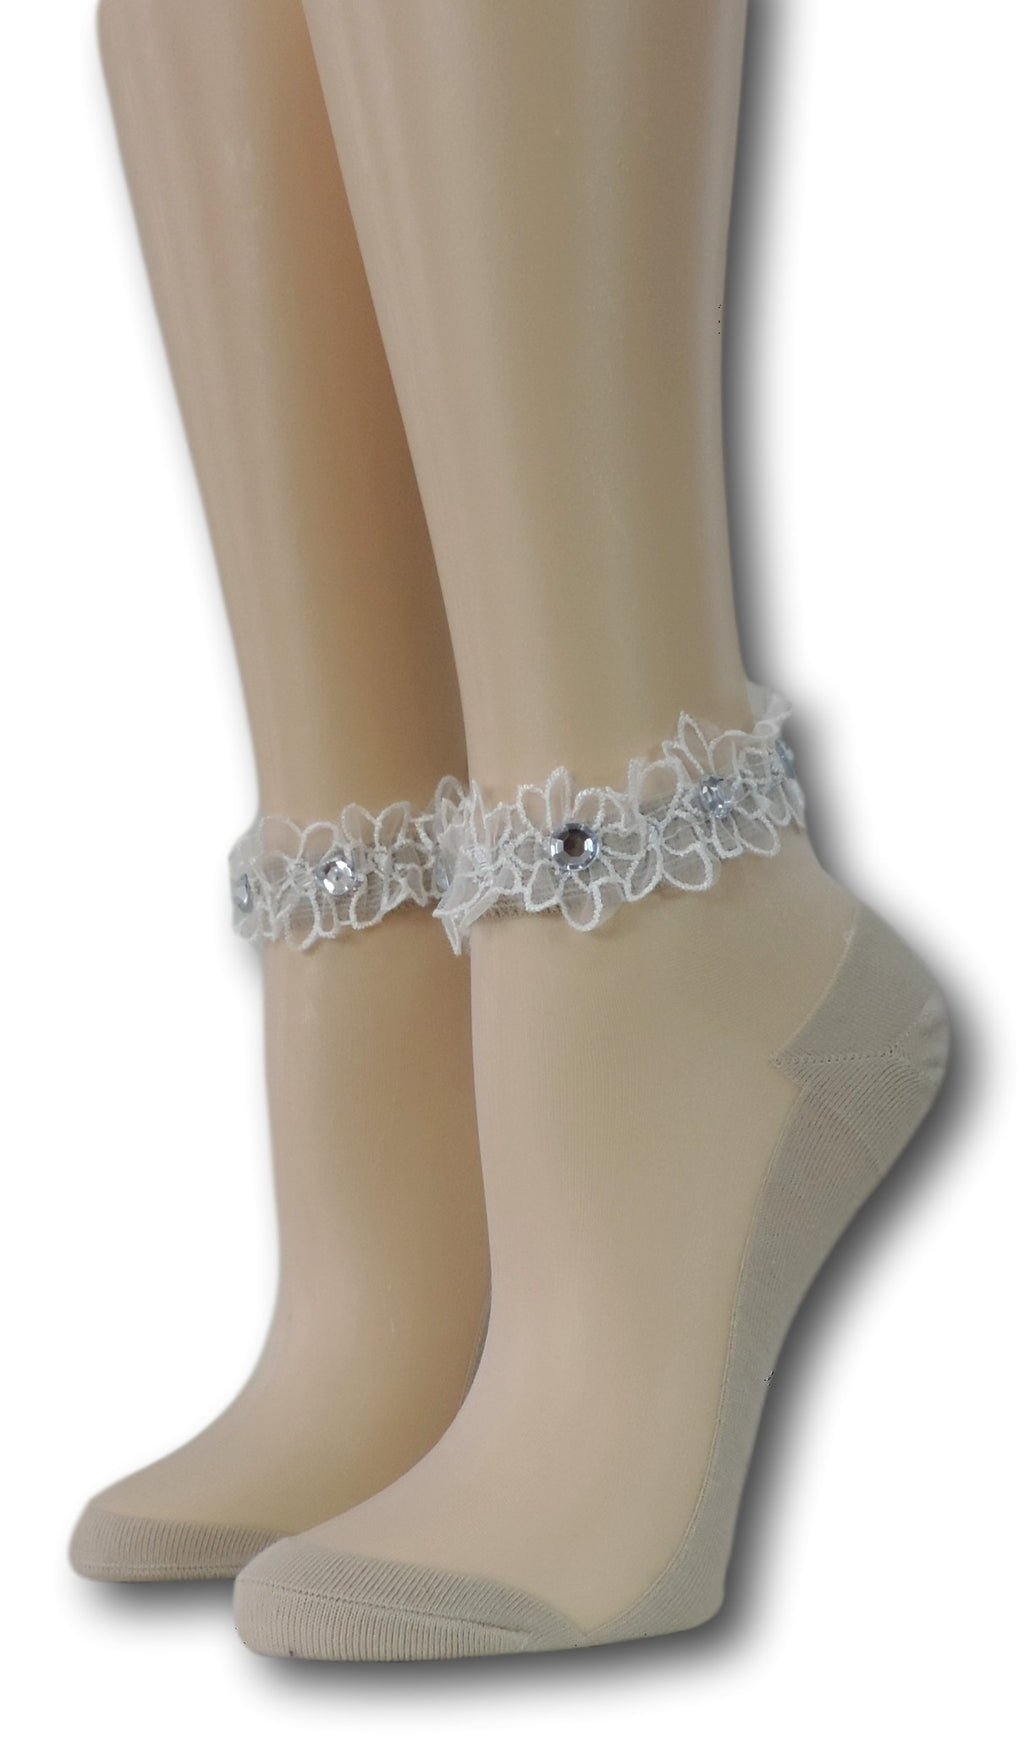 Heavy Cream Ankle Sheer Socks with beads